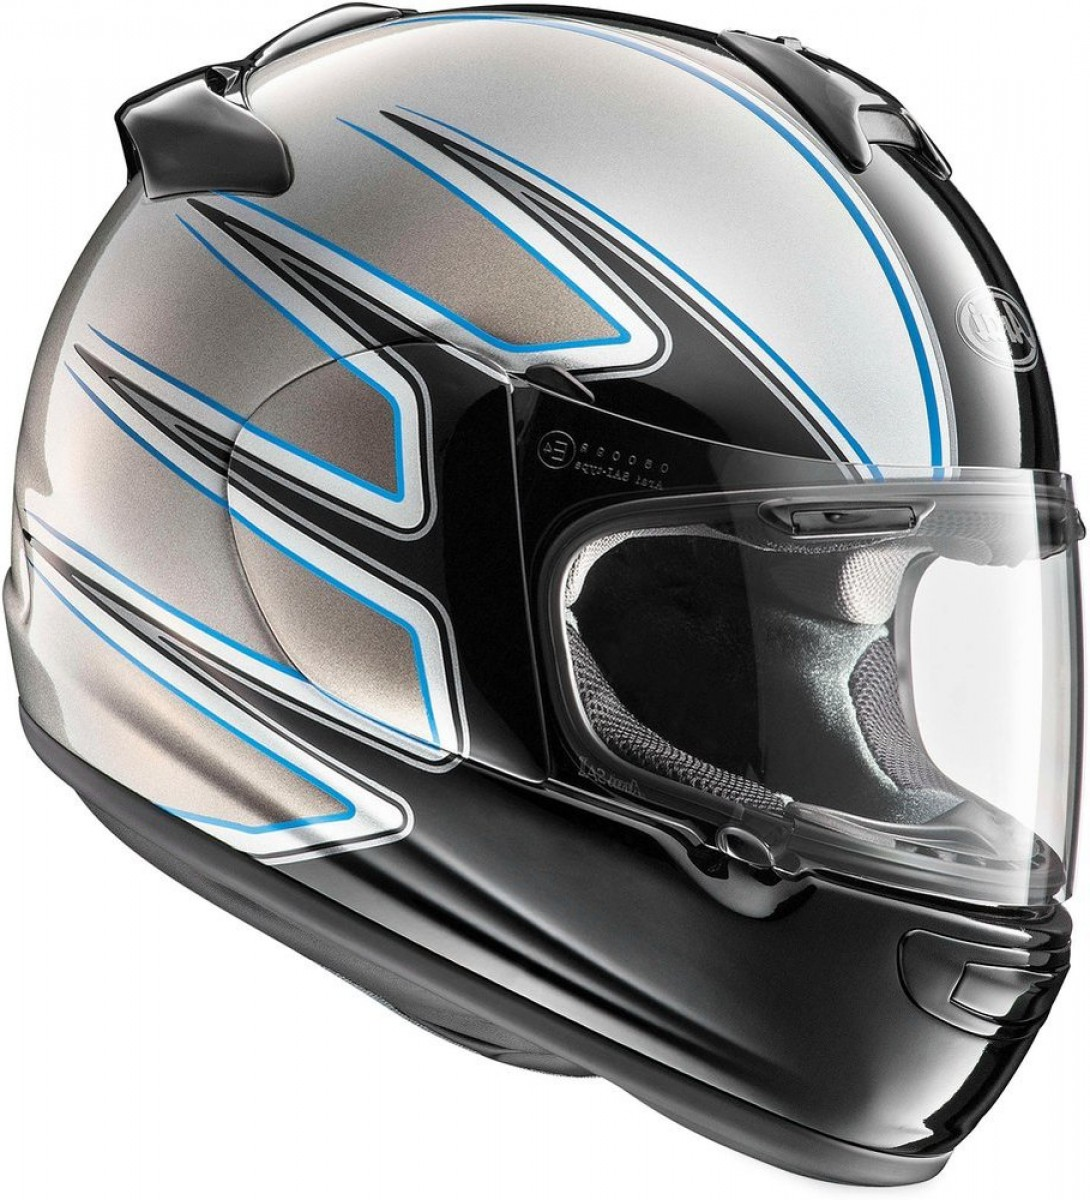 Arai Vector 2 Model: Arai Vector El Camino Full Face Helmet With Flip Up Shield